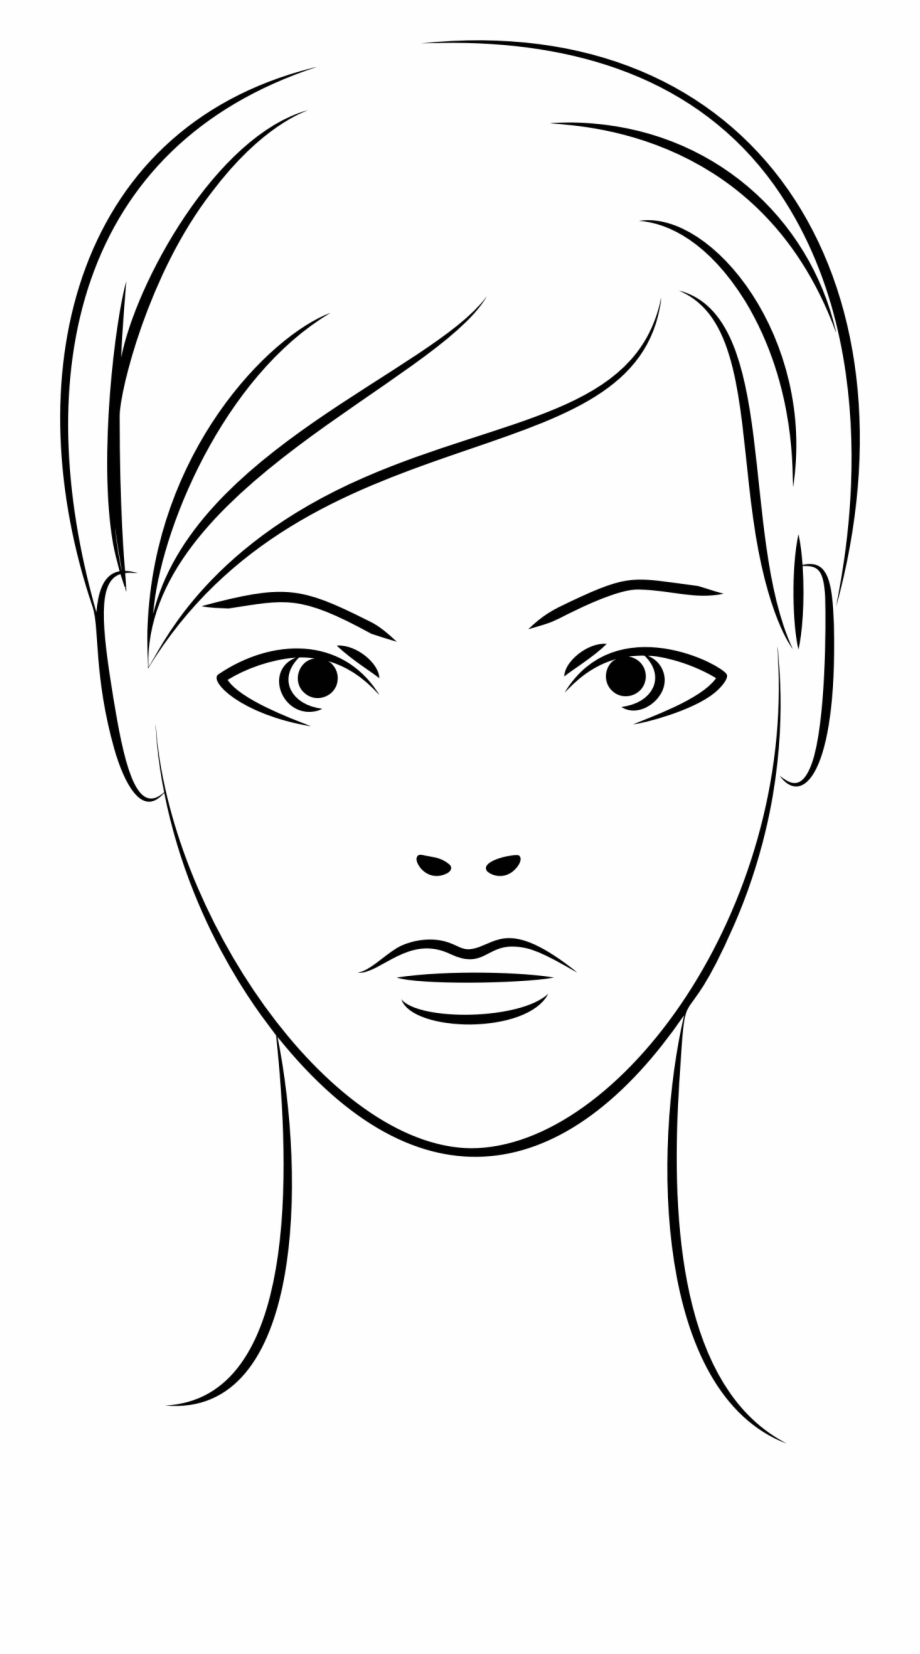 Woman face clipart jpg transparent library Clip Art Stock Female Line Art Big Image Png - Icon Woman ... jpg transparent library